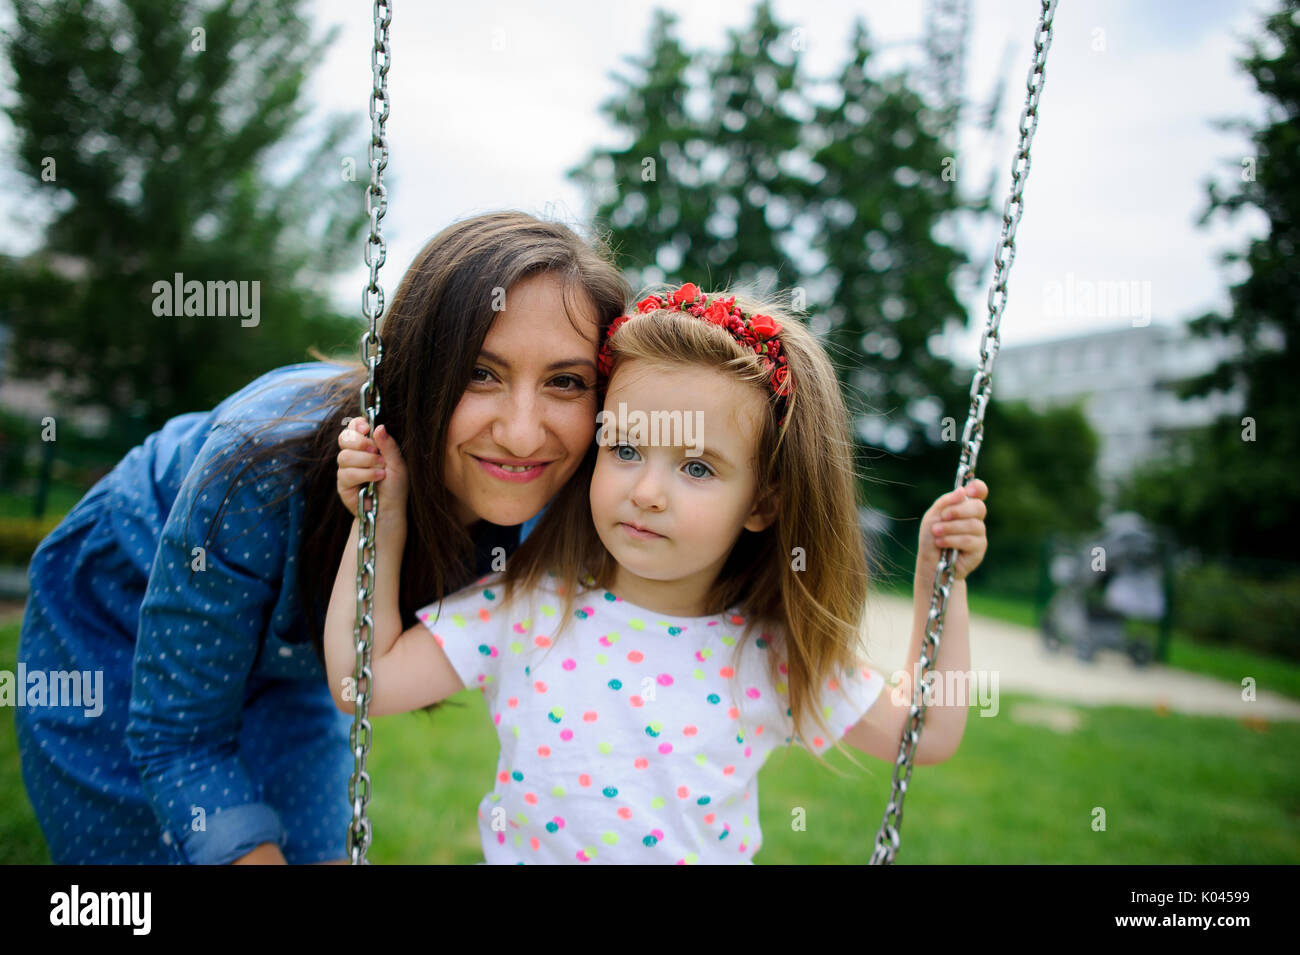 Young mother plays in the playground with the little daughter. Woman shakes the baby on a swing. City court yard. Serene summer day. Good mood. - Stock Image